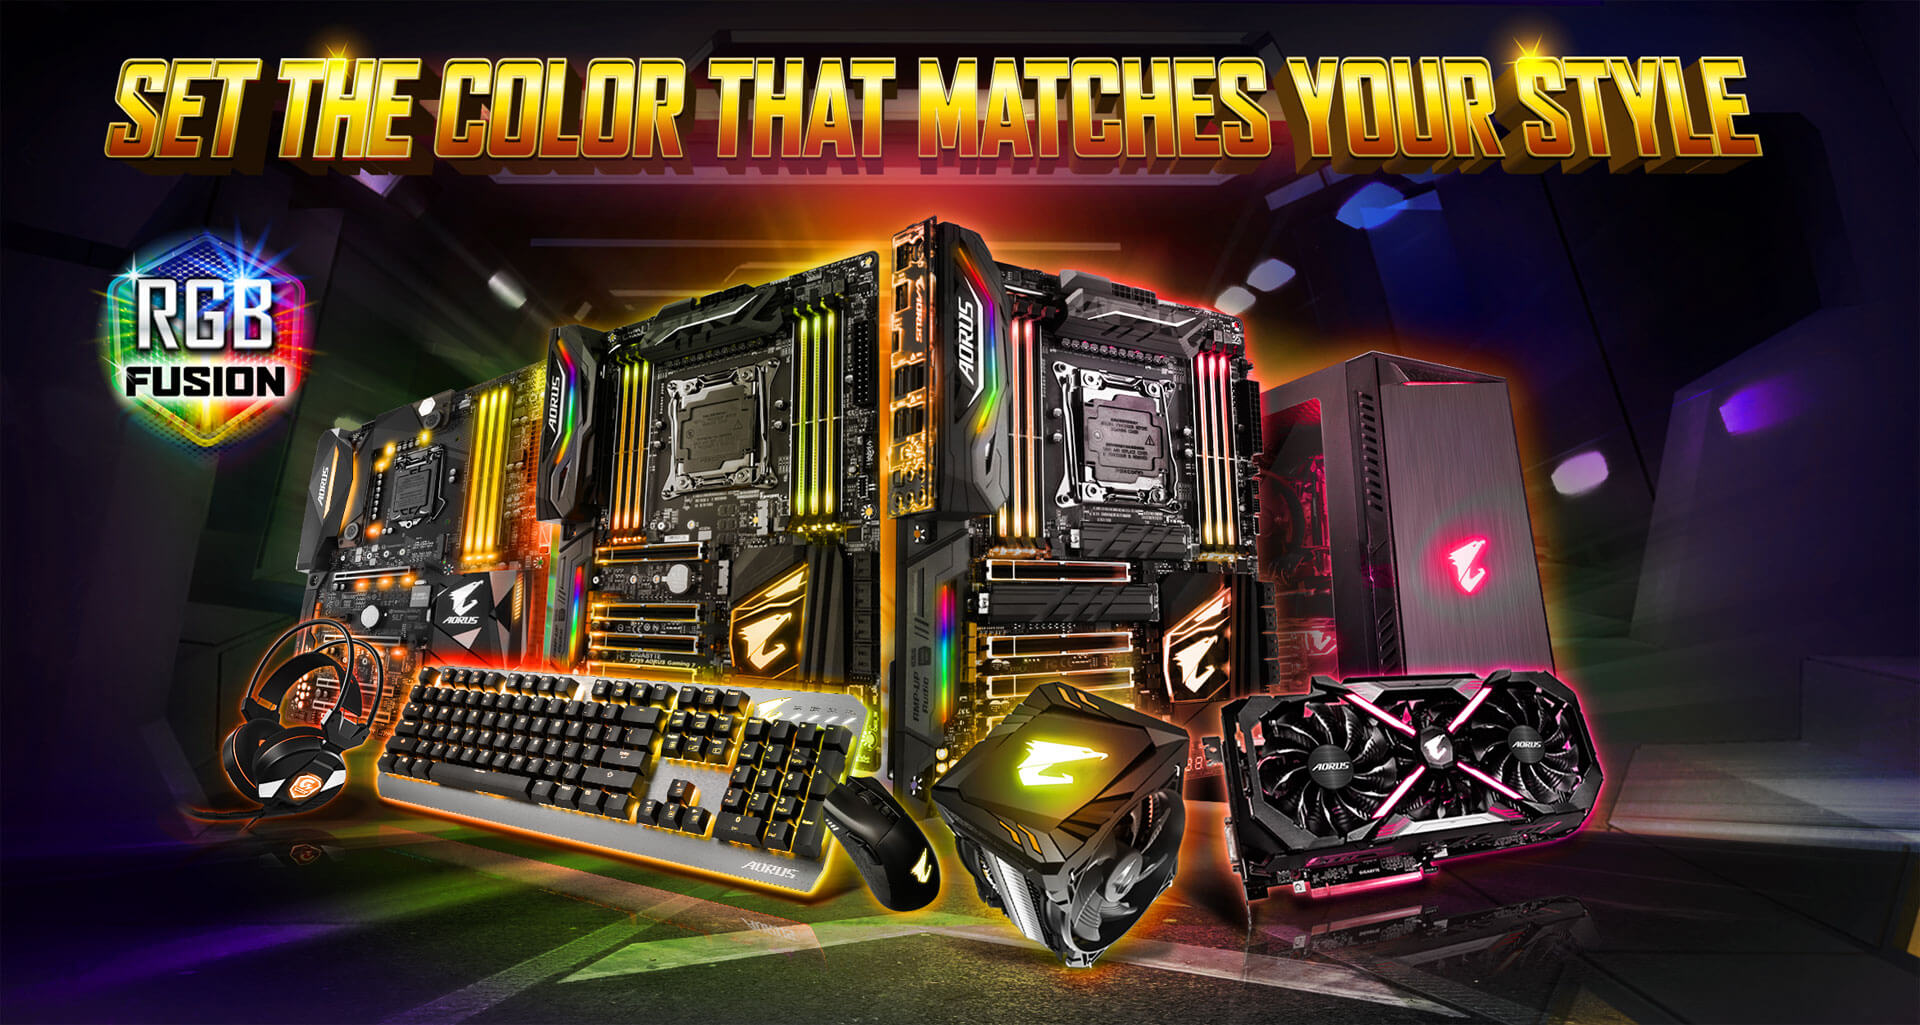 Z370 Aorus Gaming 7 Rev 10 Motherboard Gigabyte Usa Lightsaber Wiring Diagram For Soundboard With A Dazzling Array Of Products Supported Rgb Fusion Is The Software That Brings It All Together Letting Your Accessories Synchronize To Same Beat